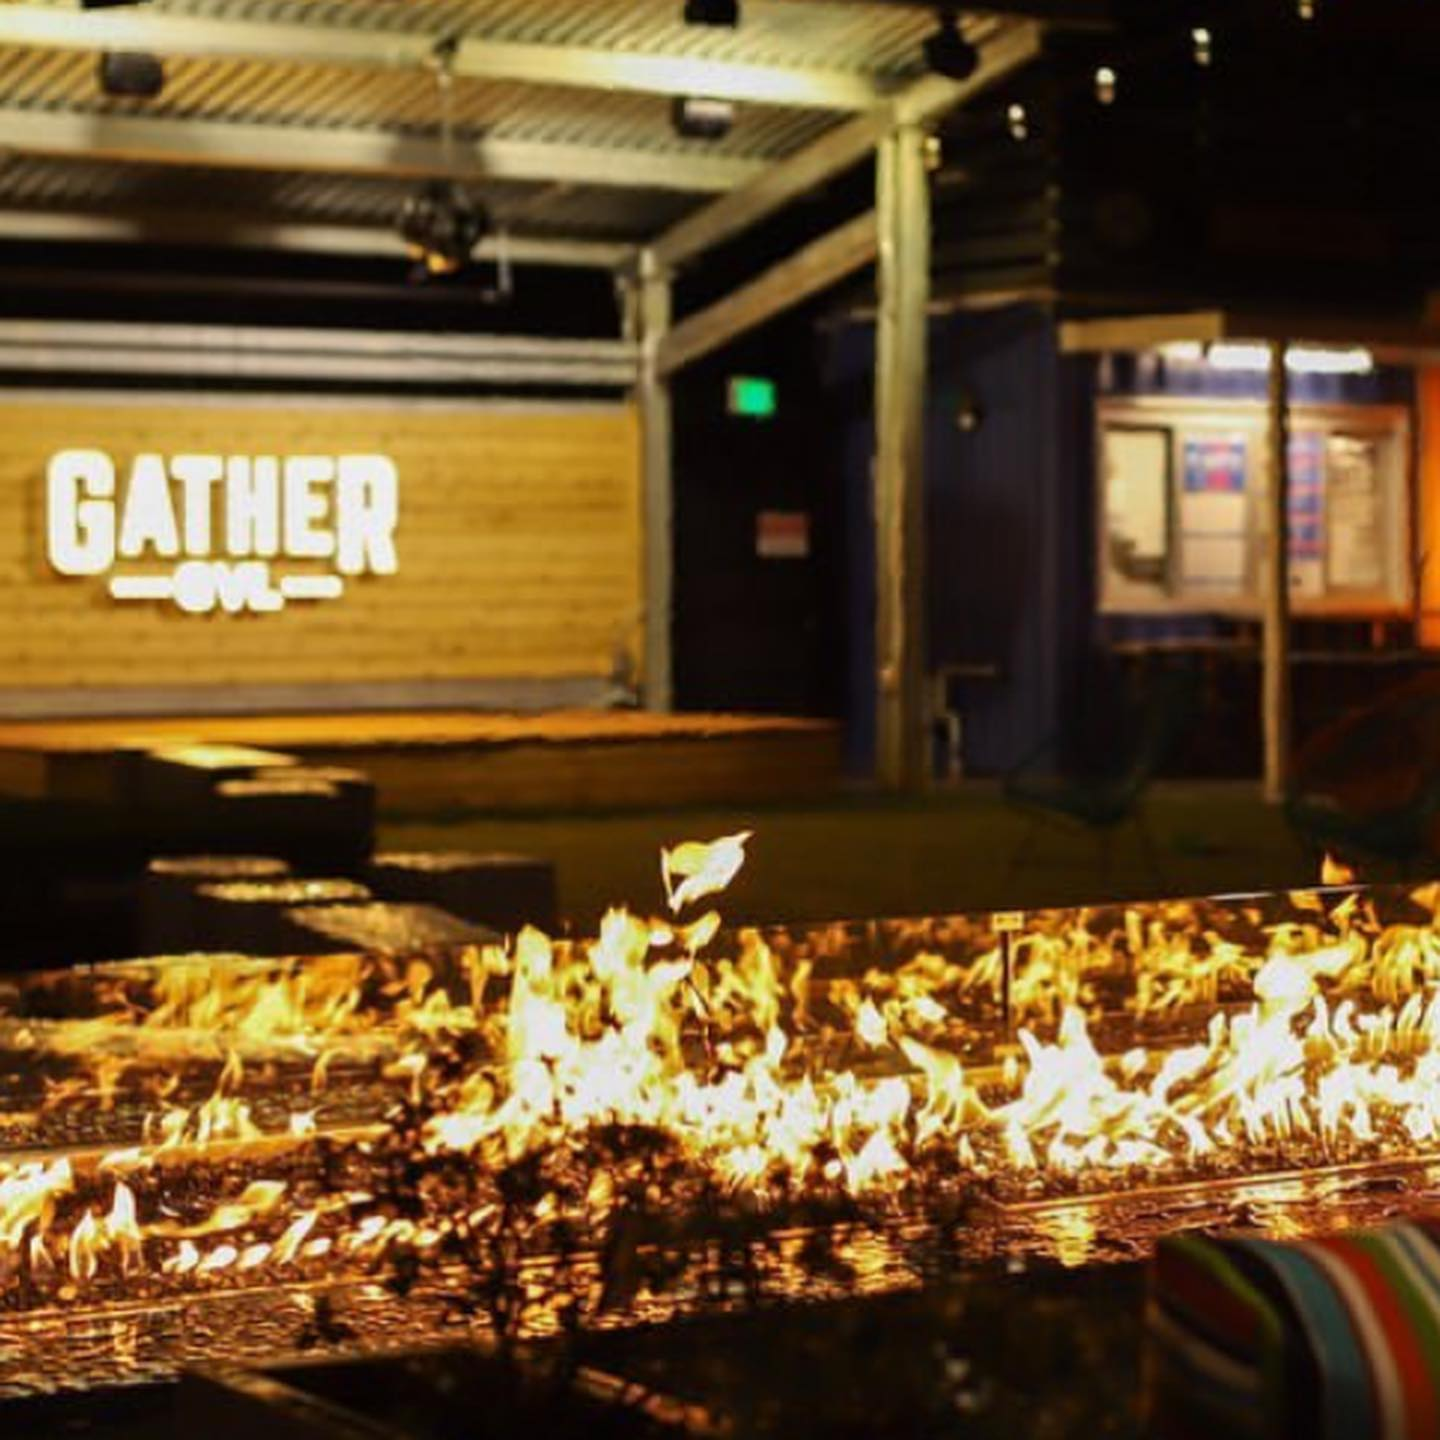 Gather GVL in downtown Greenville, SC